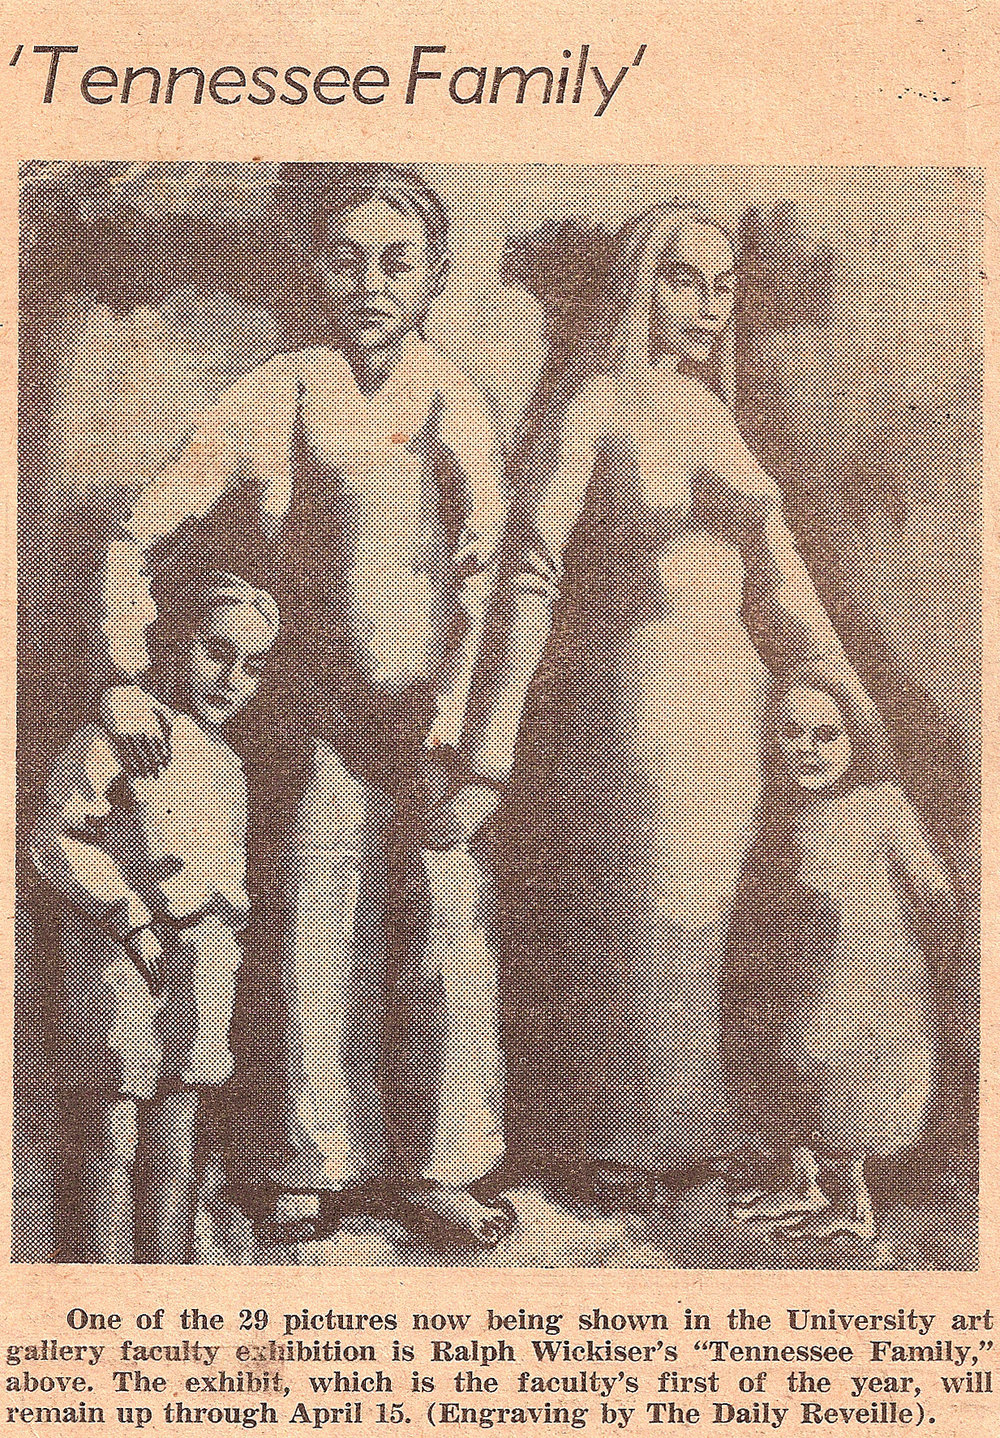 Tennessee Family_Exhibition review 1939 copy.jpg